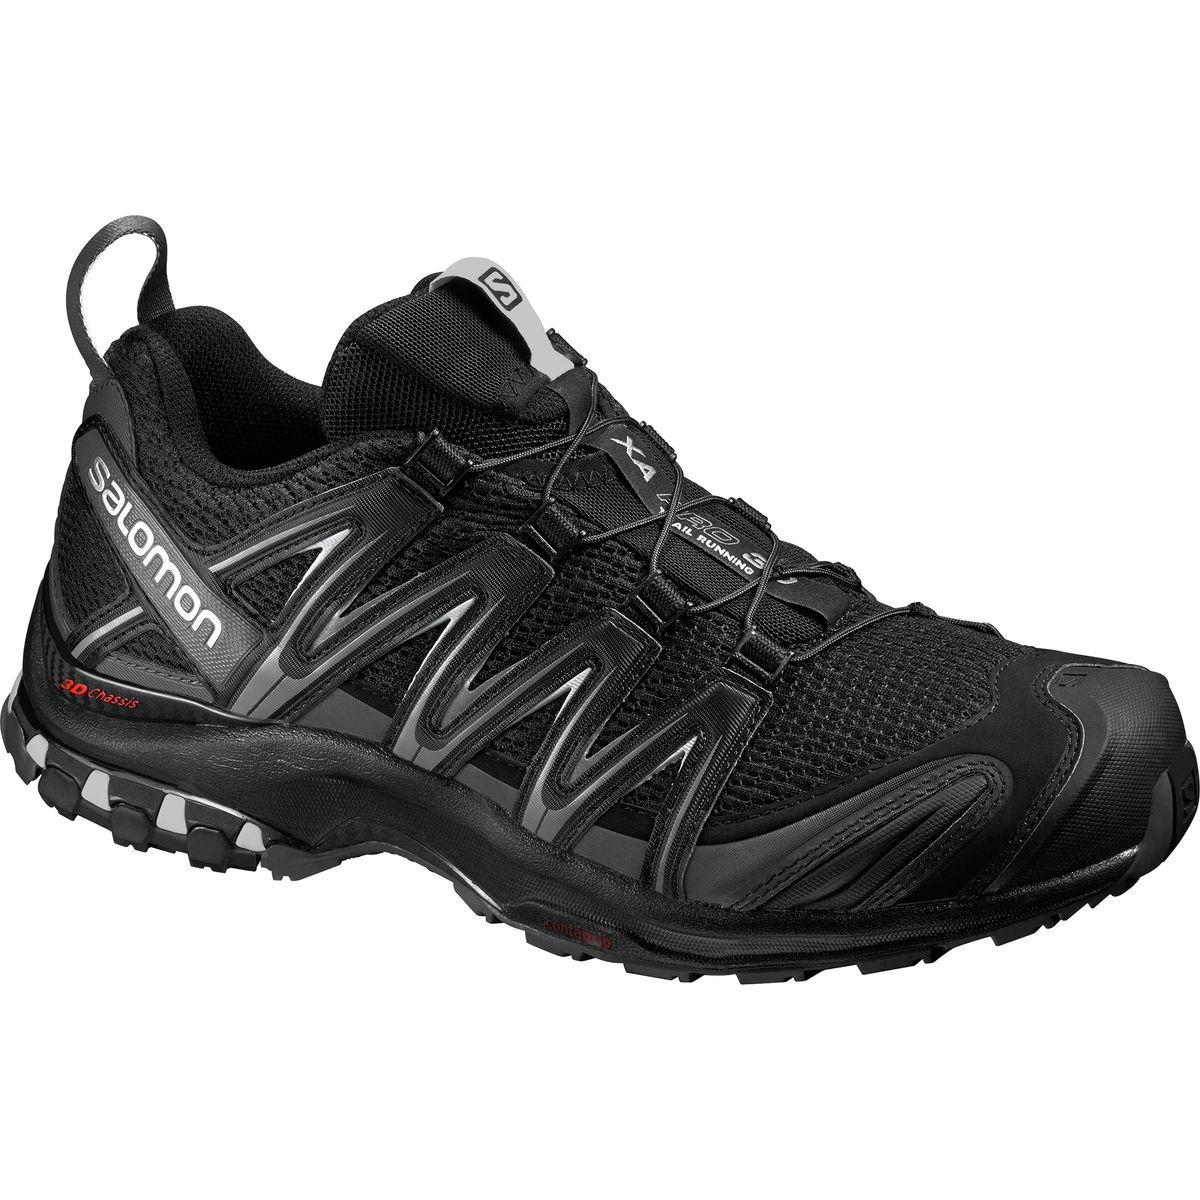 Photo of XA Pro 3D Trail Running Shoe – Men's